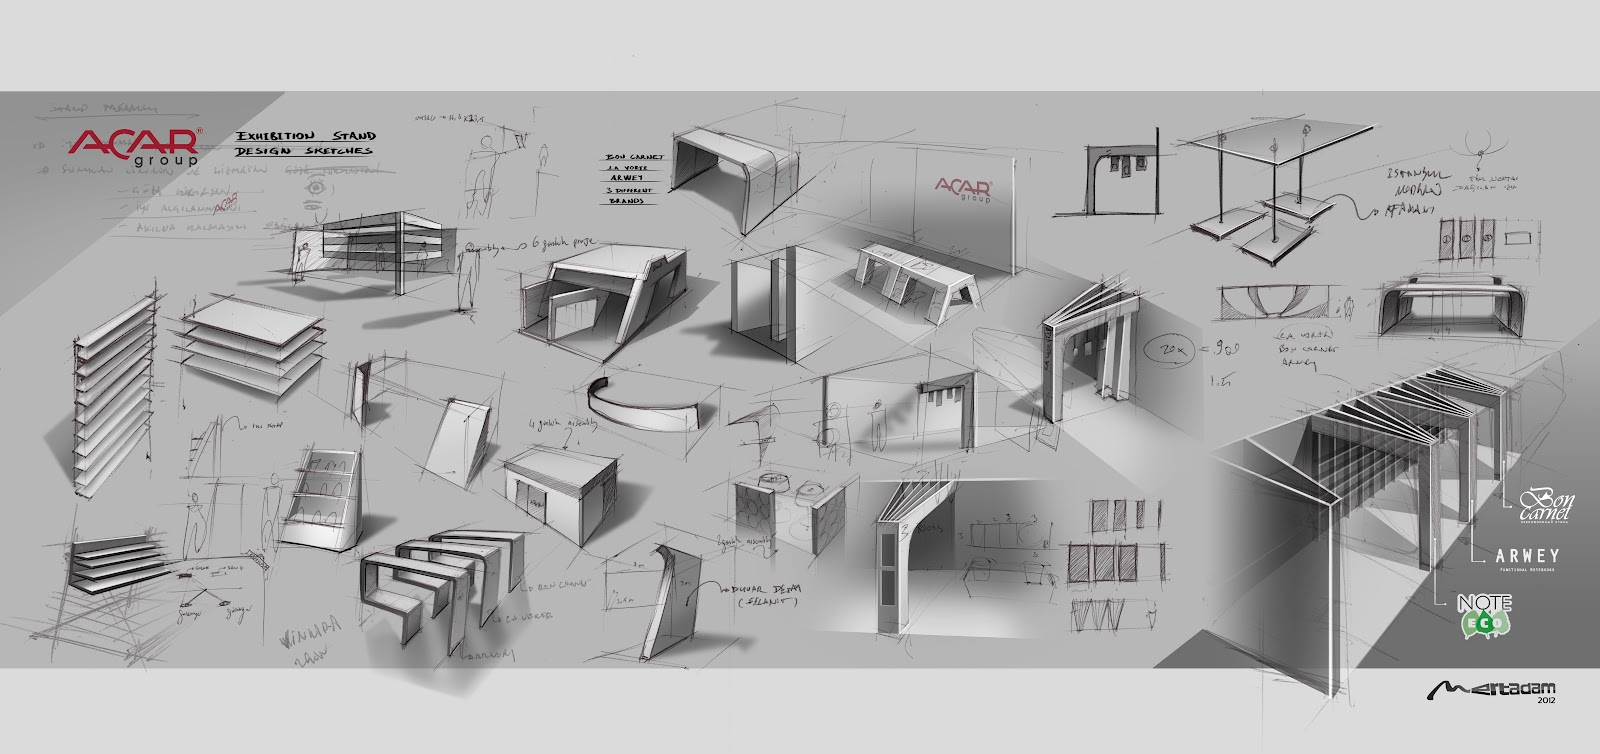 Exhibition Stall Sketch : Sketches exhibitions and exhibition stands on pinterest